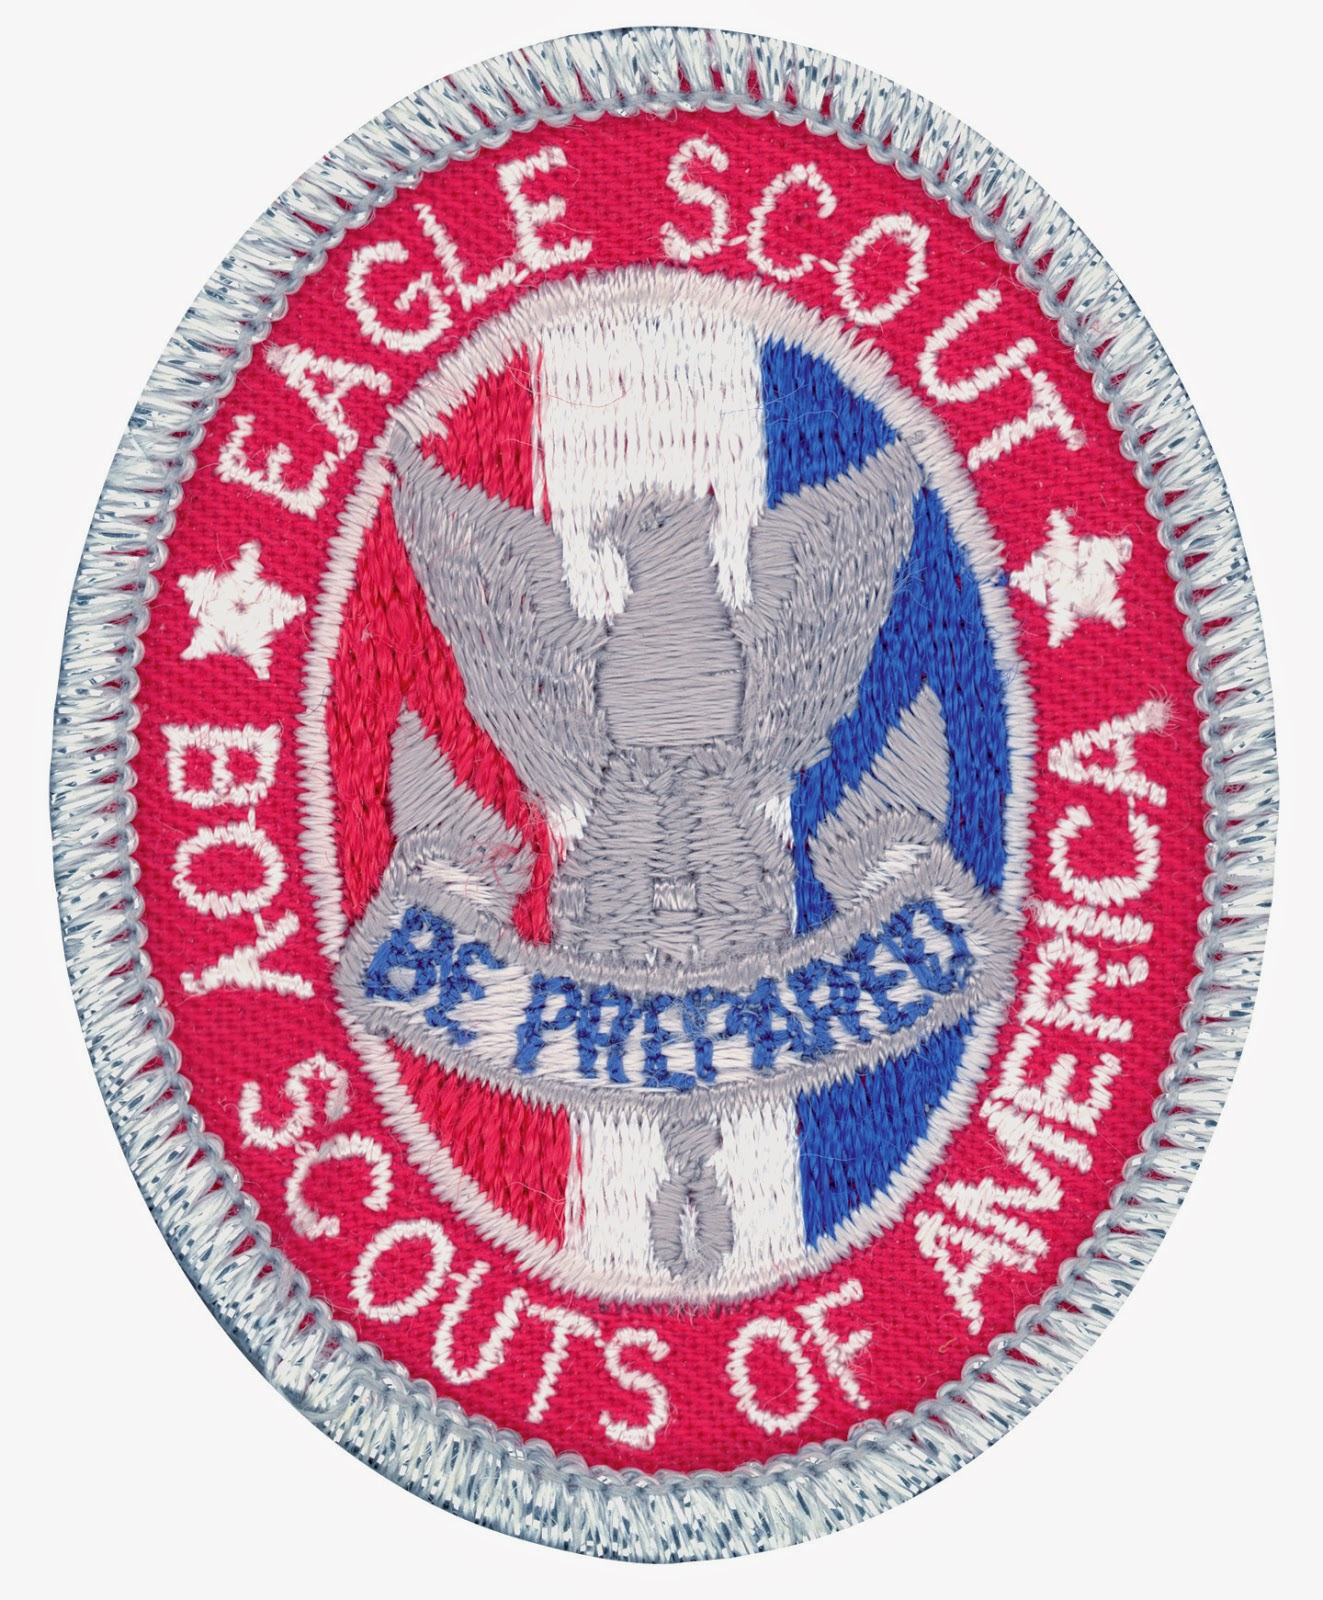 Eagle Scout Logo Bsa Troop 103 Miamisburg Ohio Hall Of Eagles